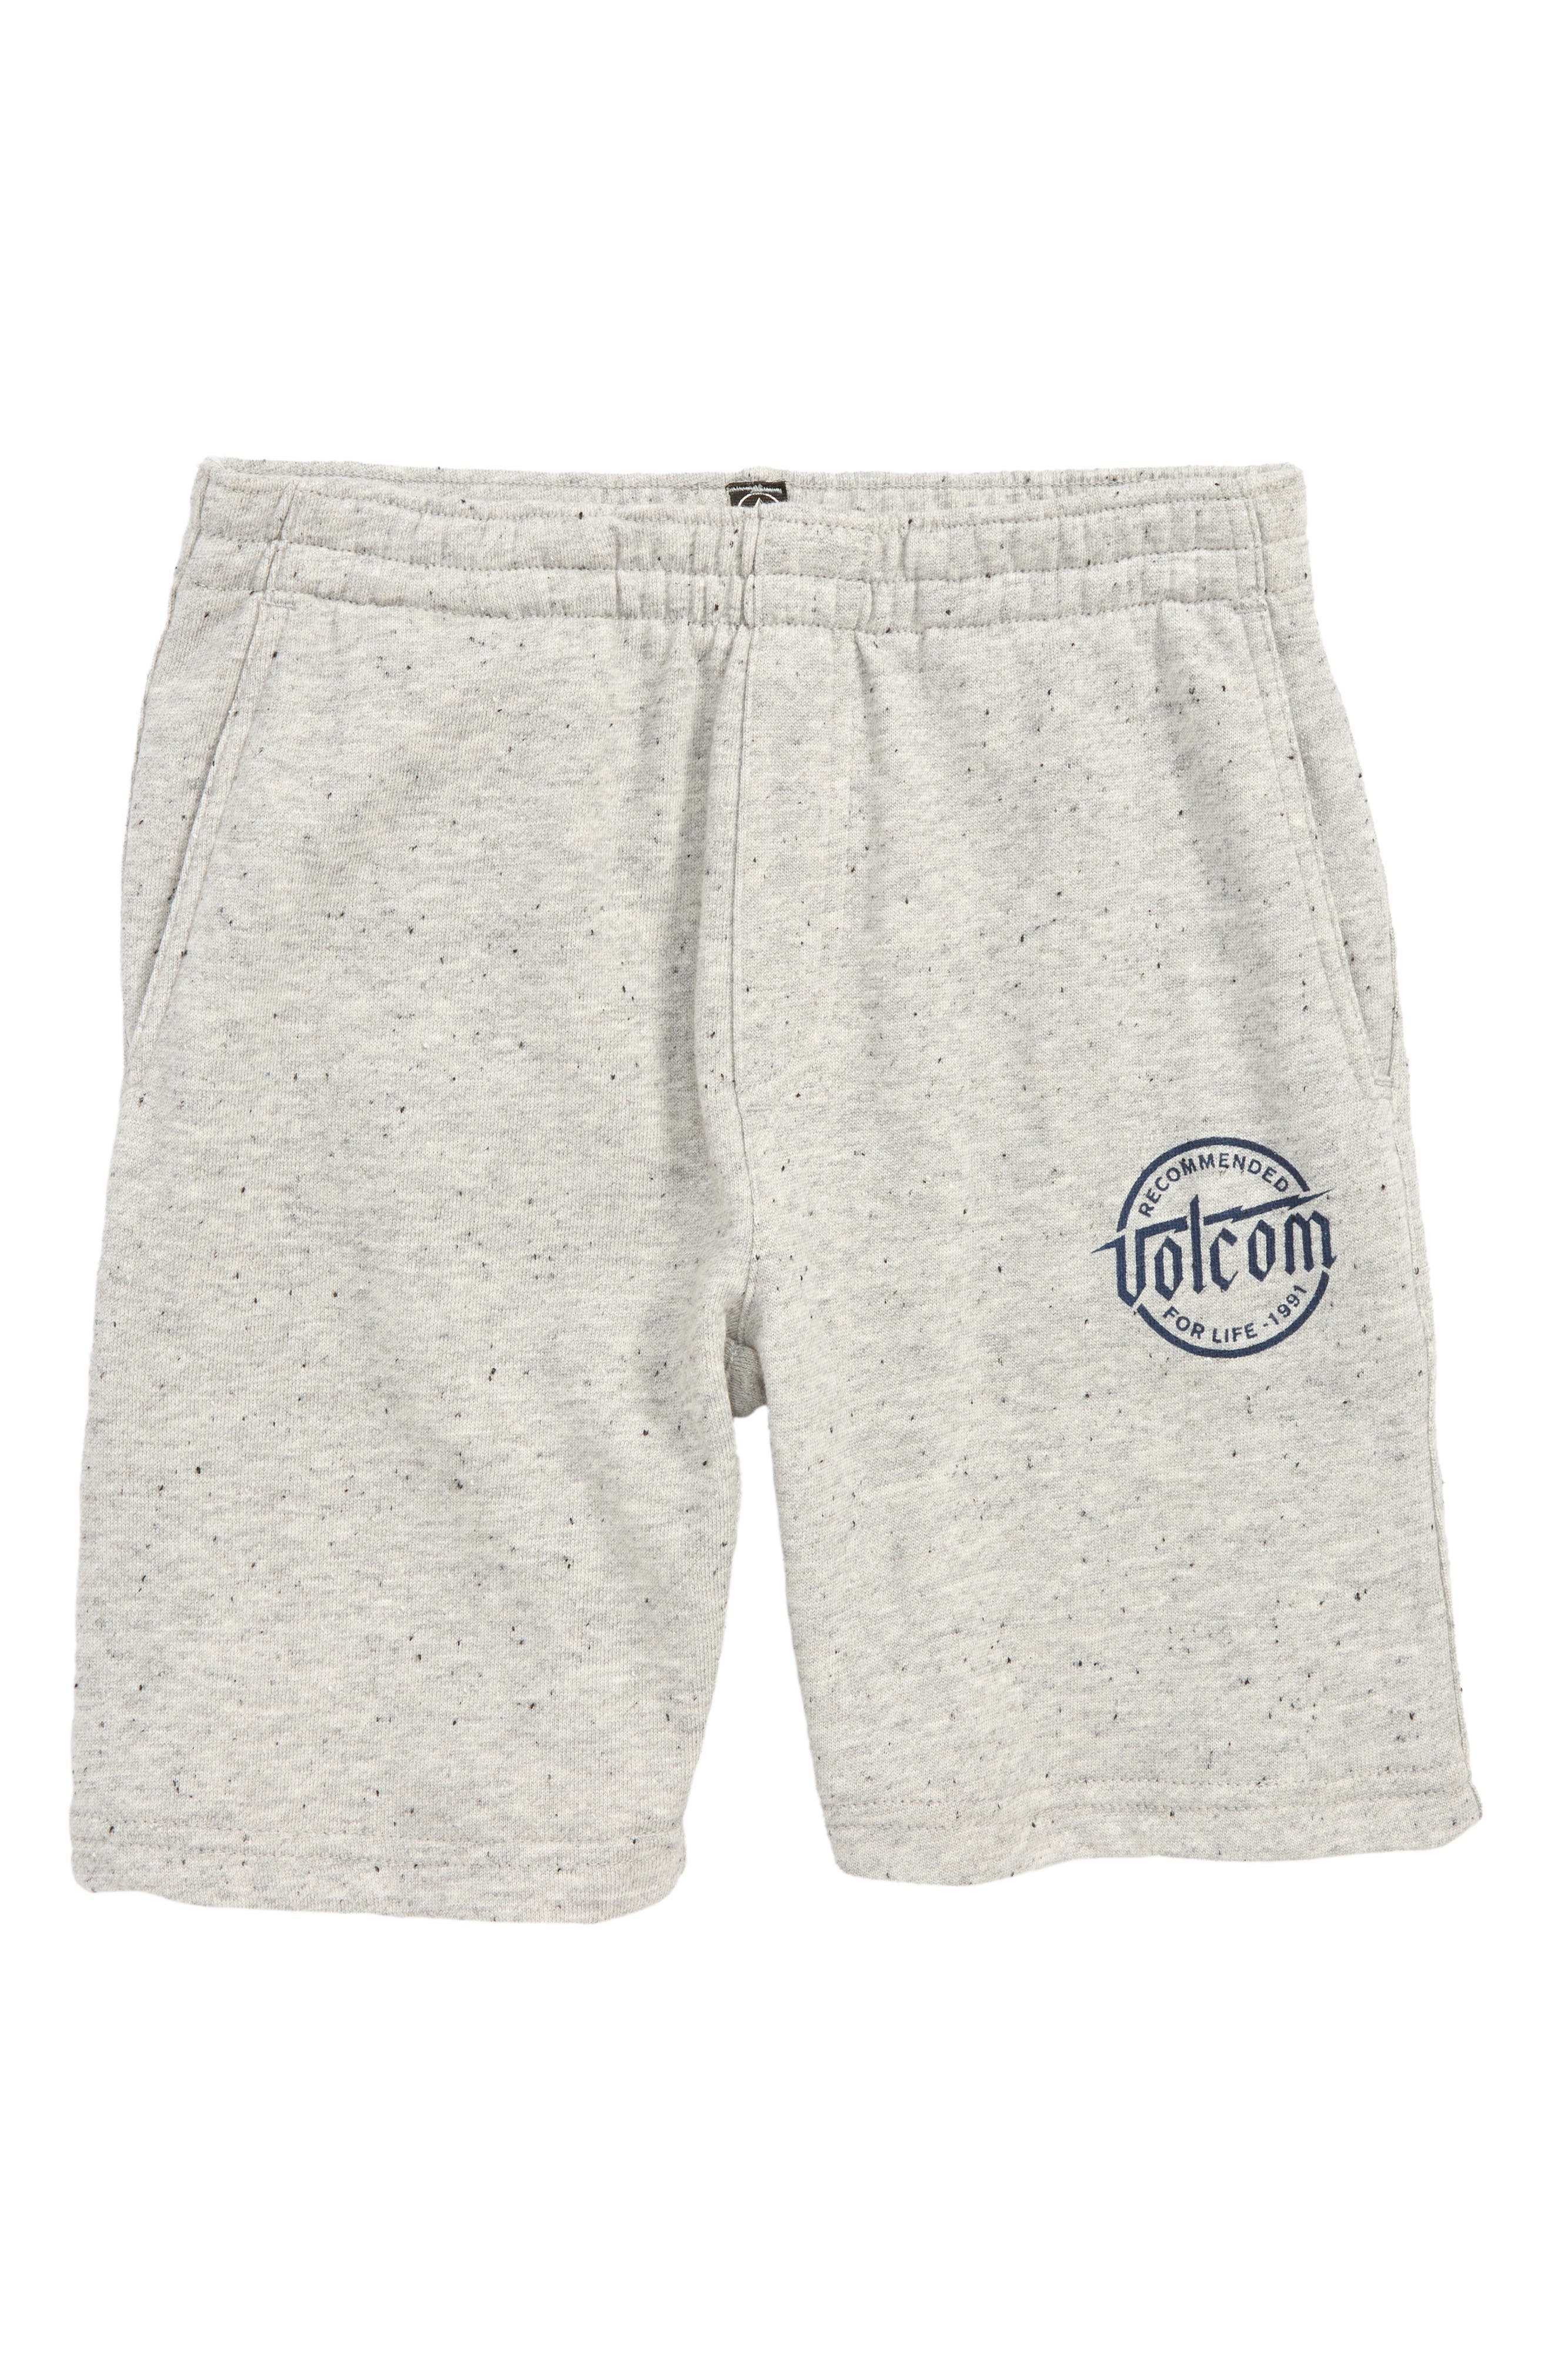 Downtime Sweat Shorts,                         Main,                         color, 020